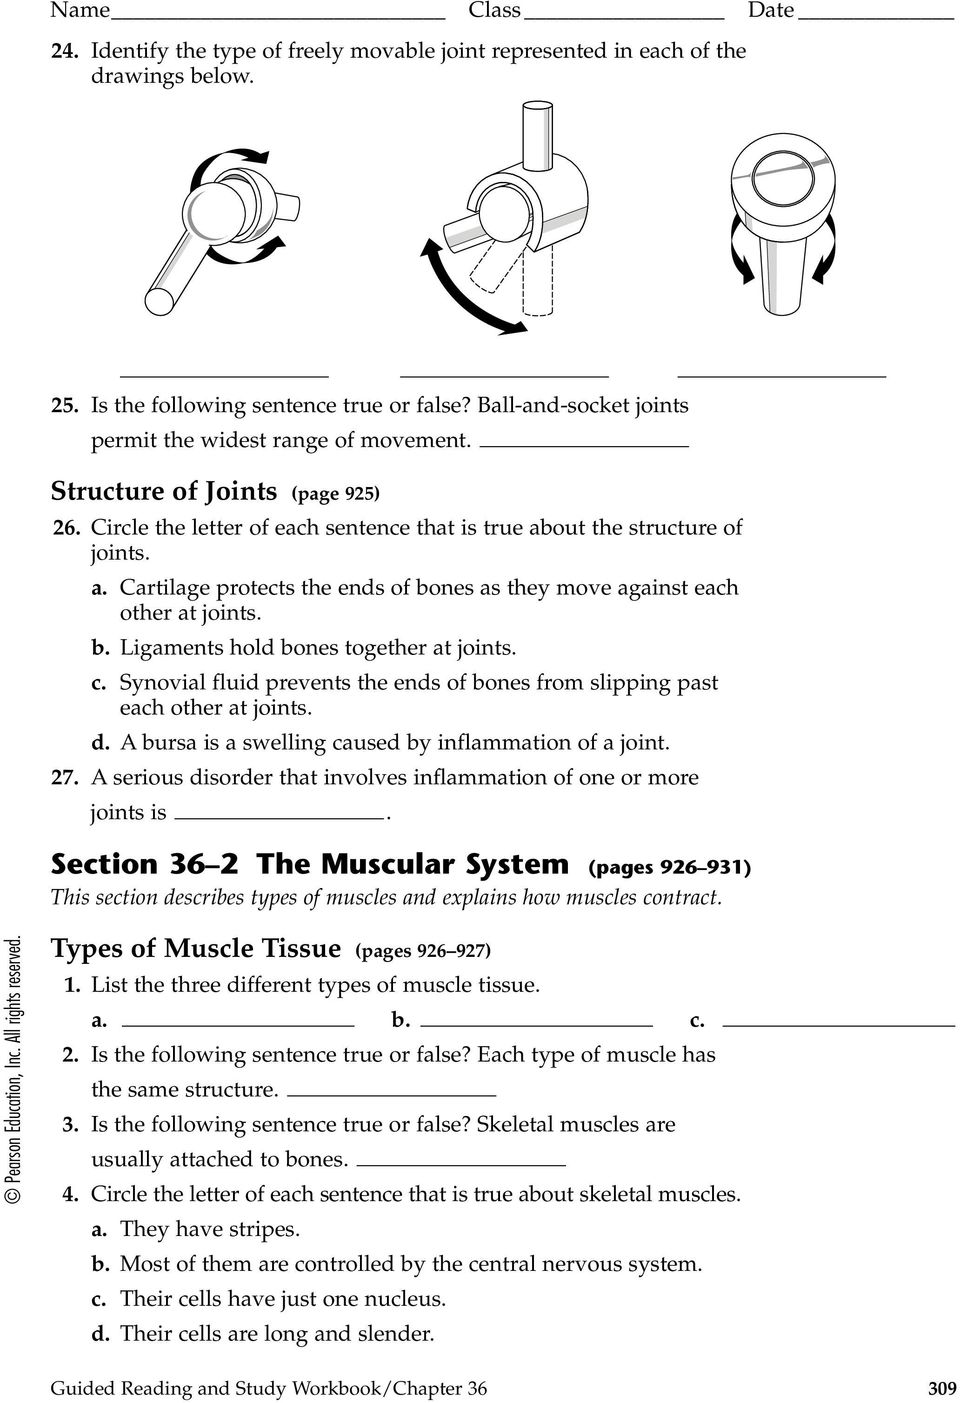 Skeletal, Muscular, and Integumentary Systems - PDF